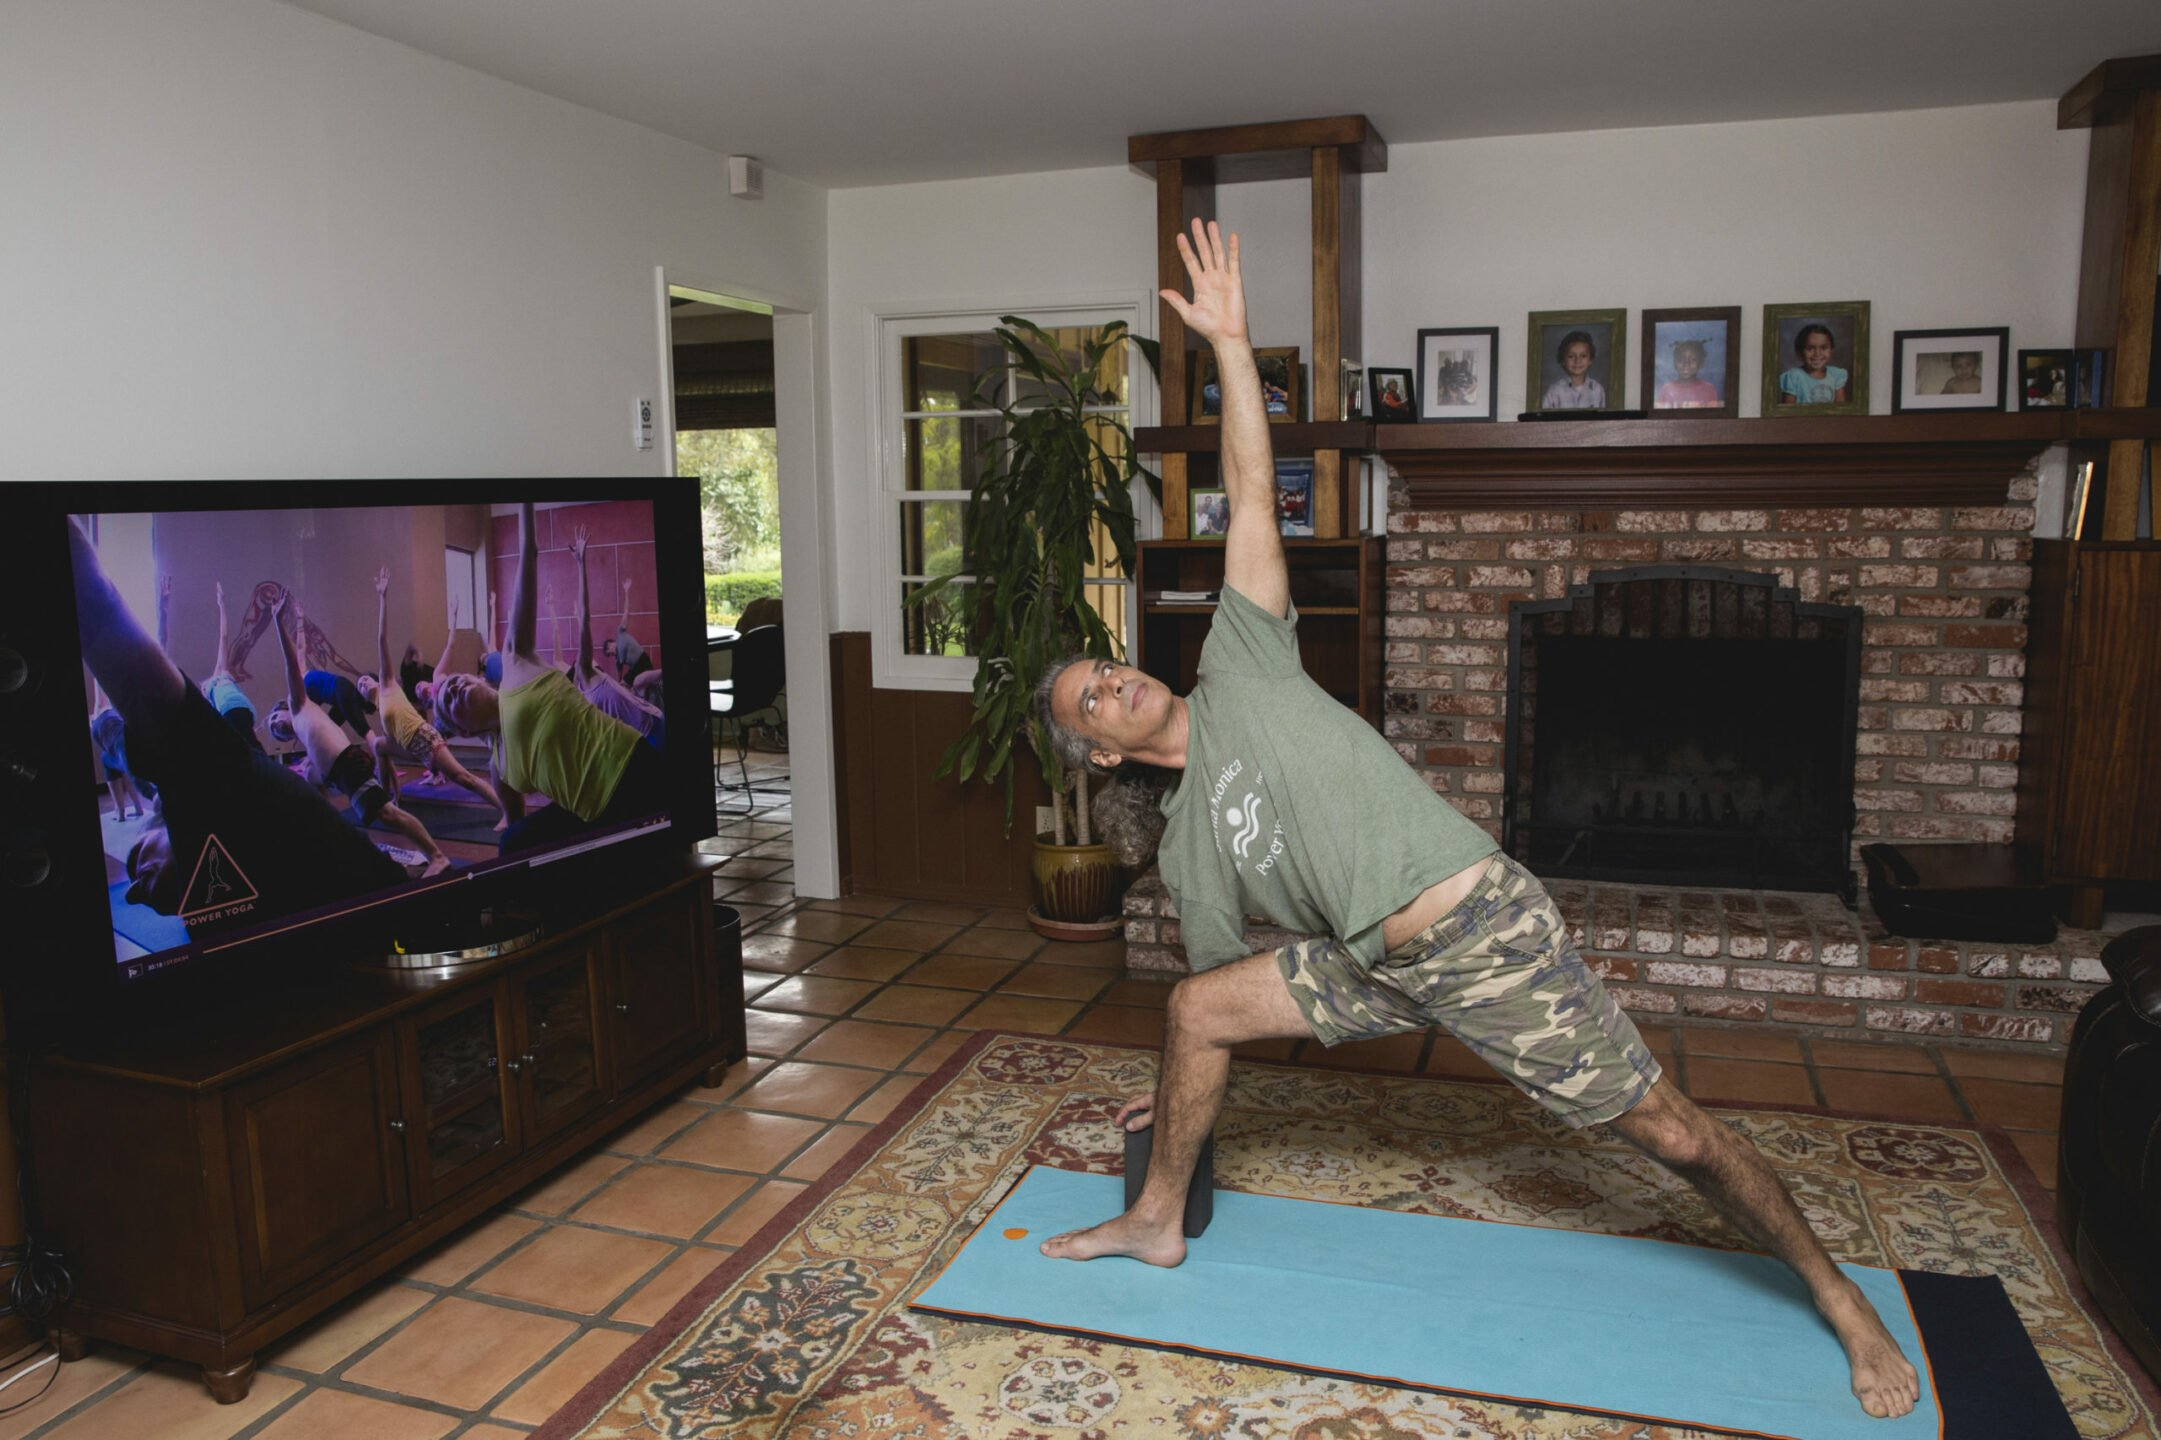 Bryan Kest doing a yoga pose in a living room.